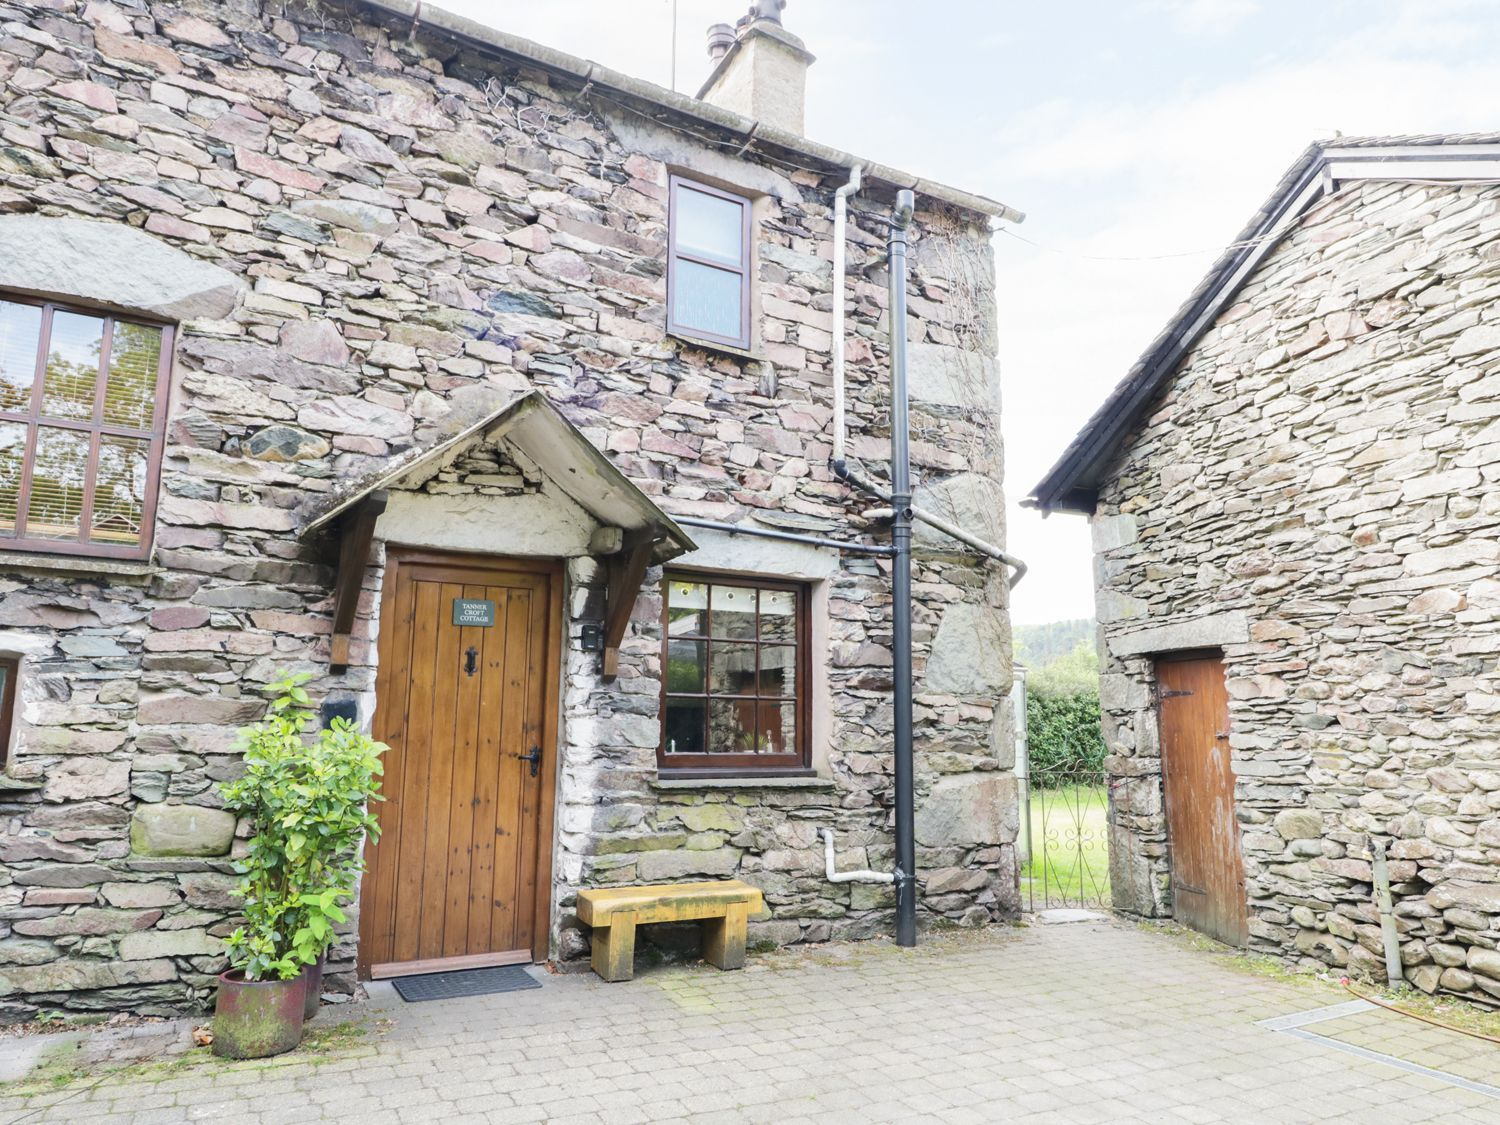 a fantastic lakeland stone cottage in the village of grasmere in the rh pinterest com